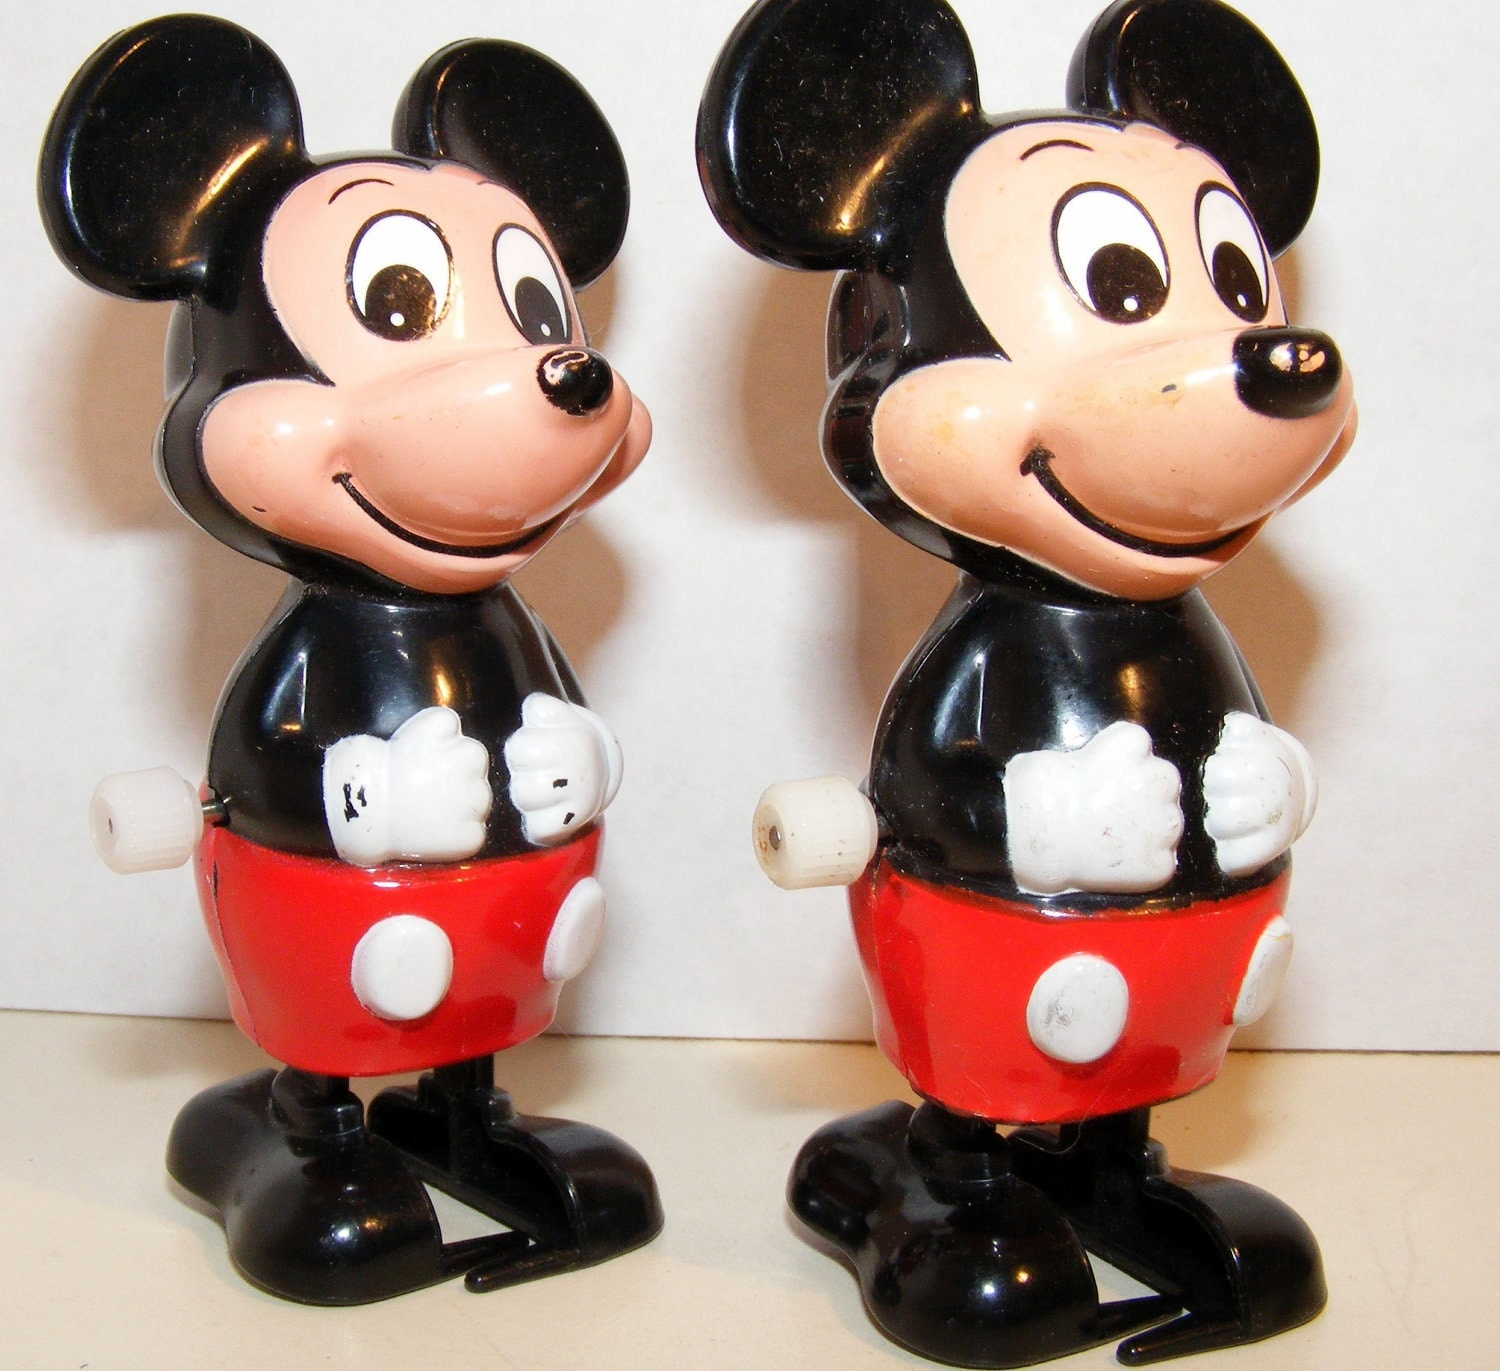 Best Mickey Mouse Toys : Vintage mickey mouse wind up toys ramp walkers s